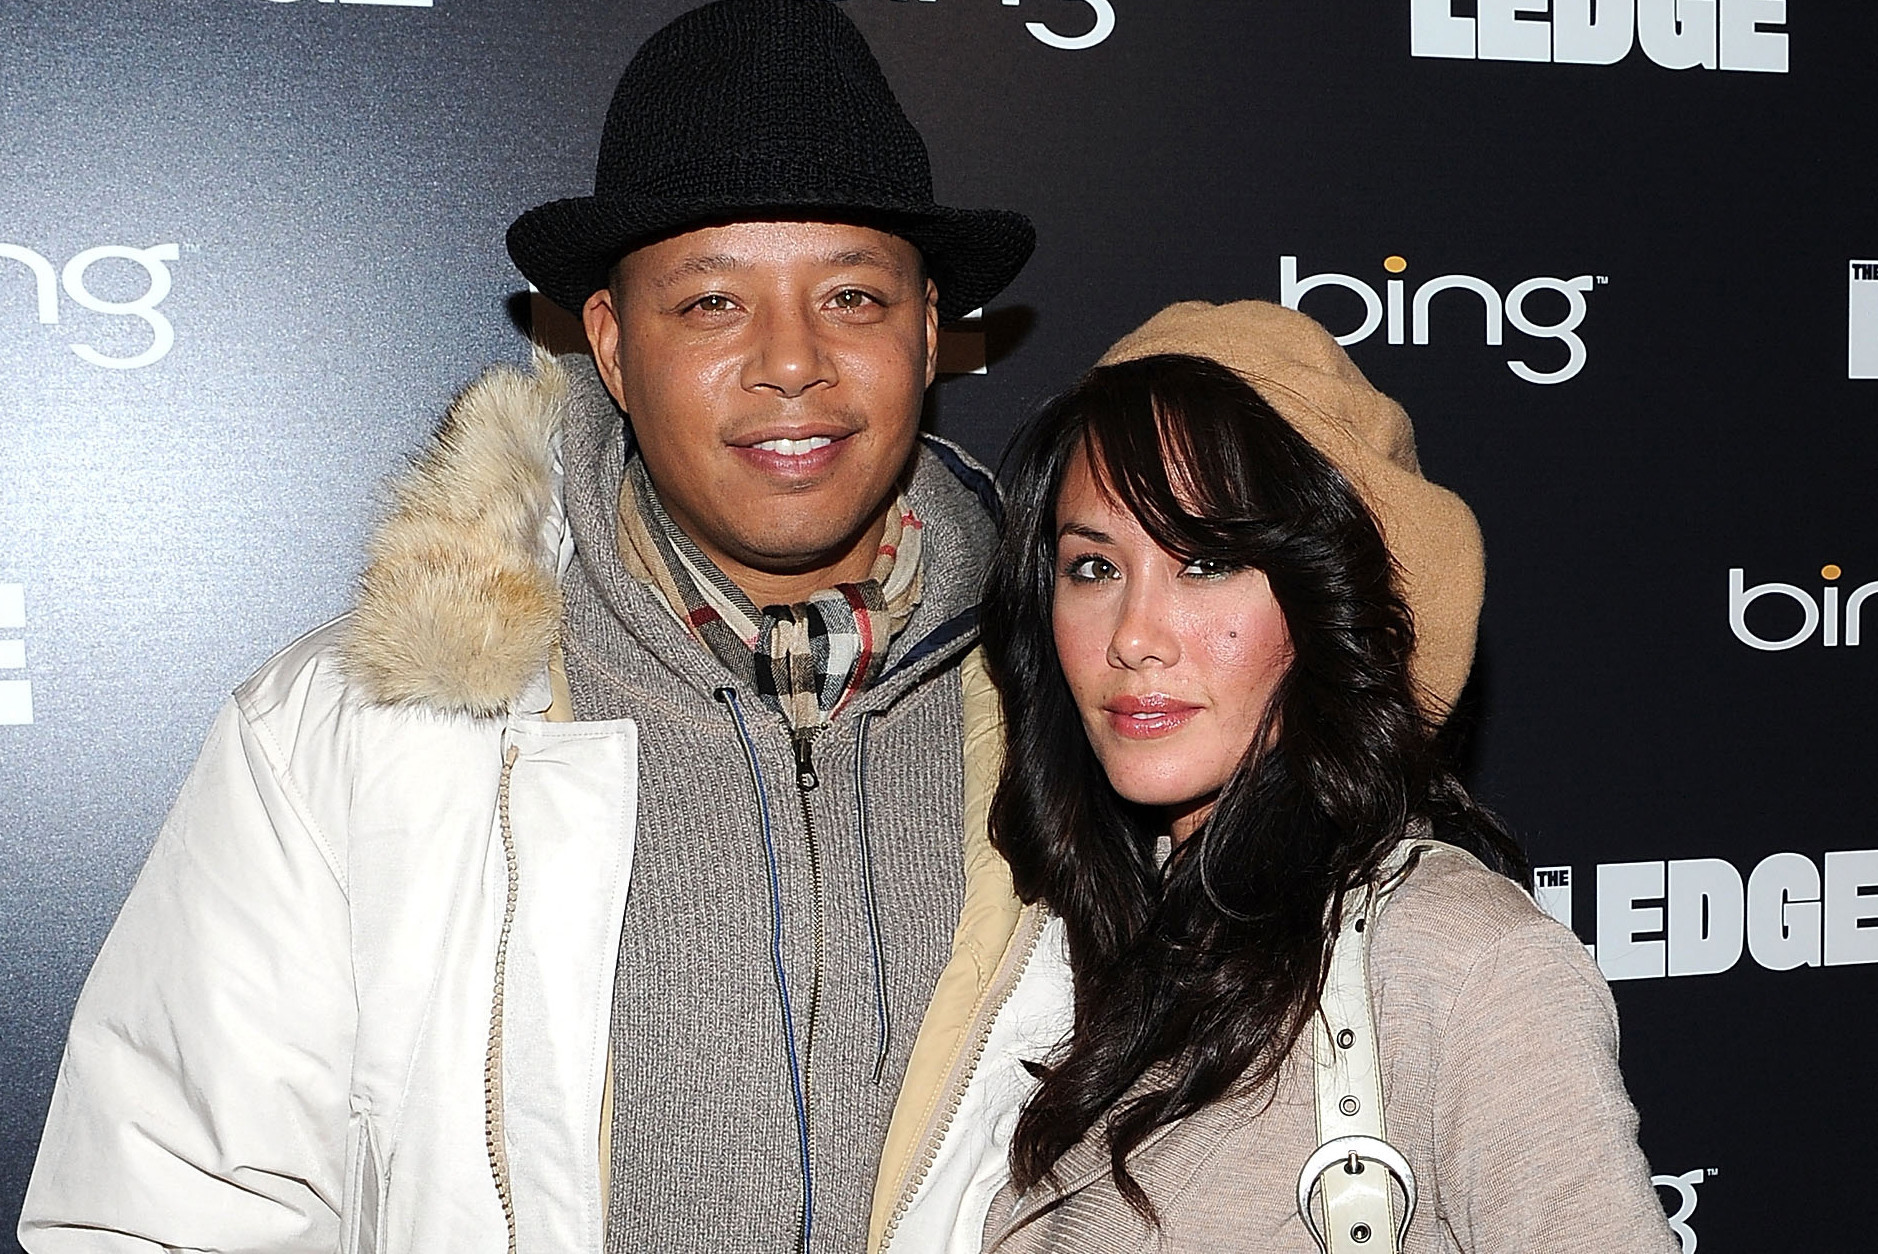 EXCLUSIVE: 'Empire' star Terrence Howard loses court battle, must pay ex-wife $1.3 million